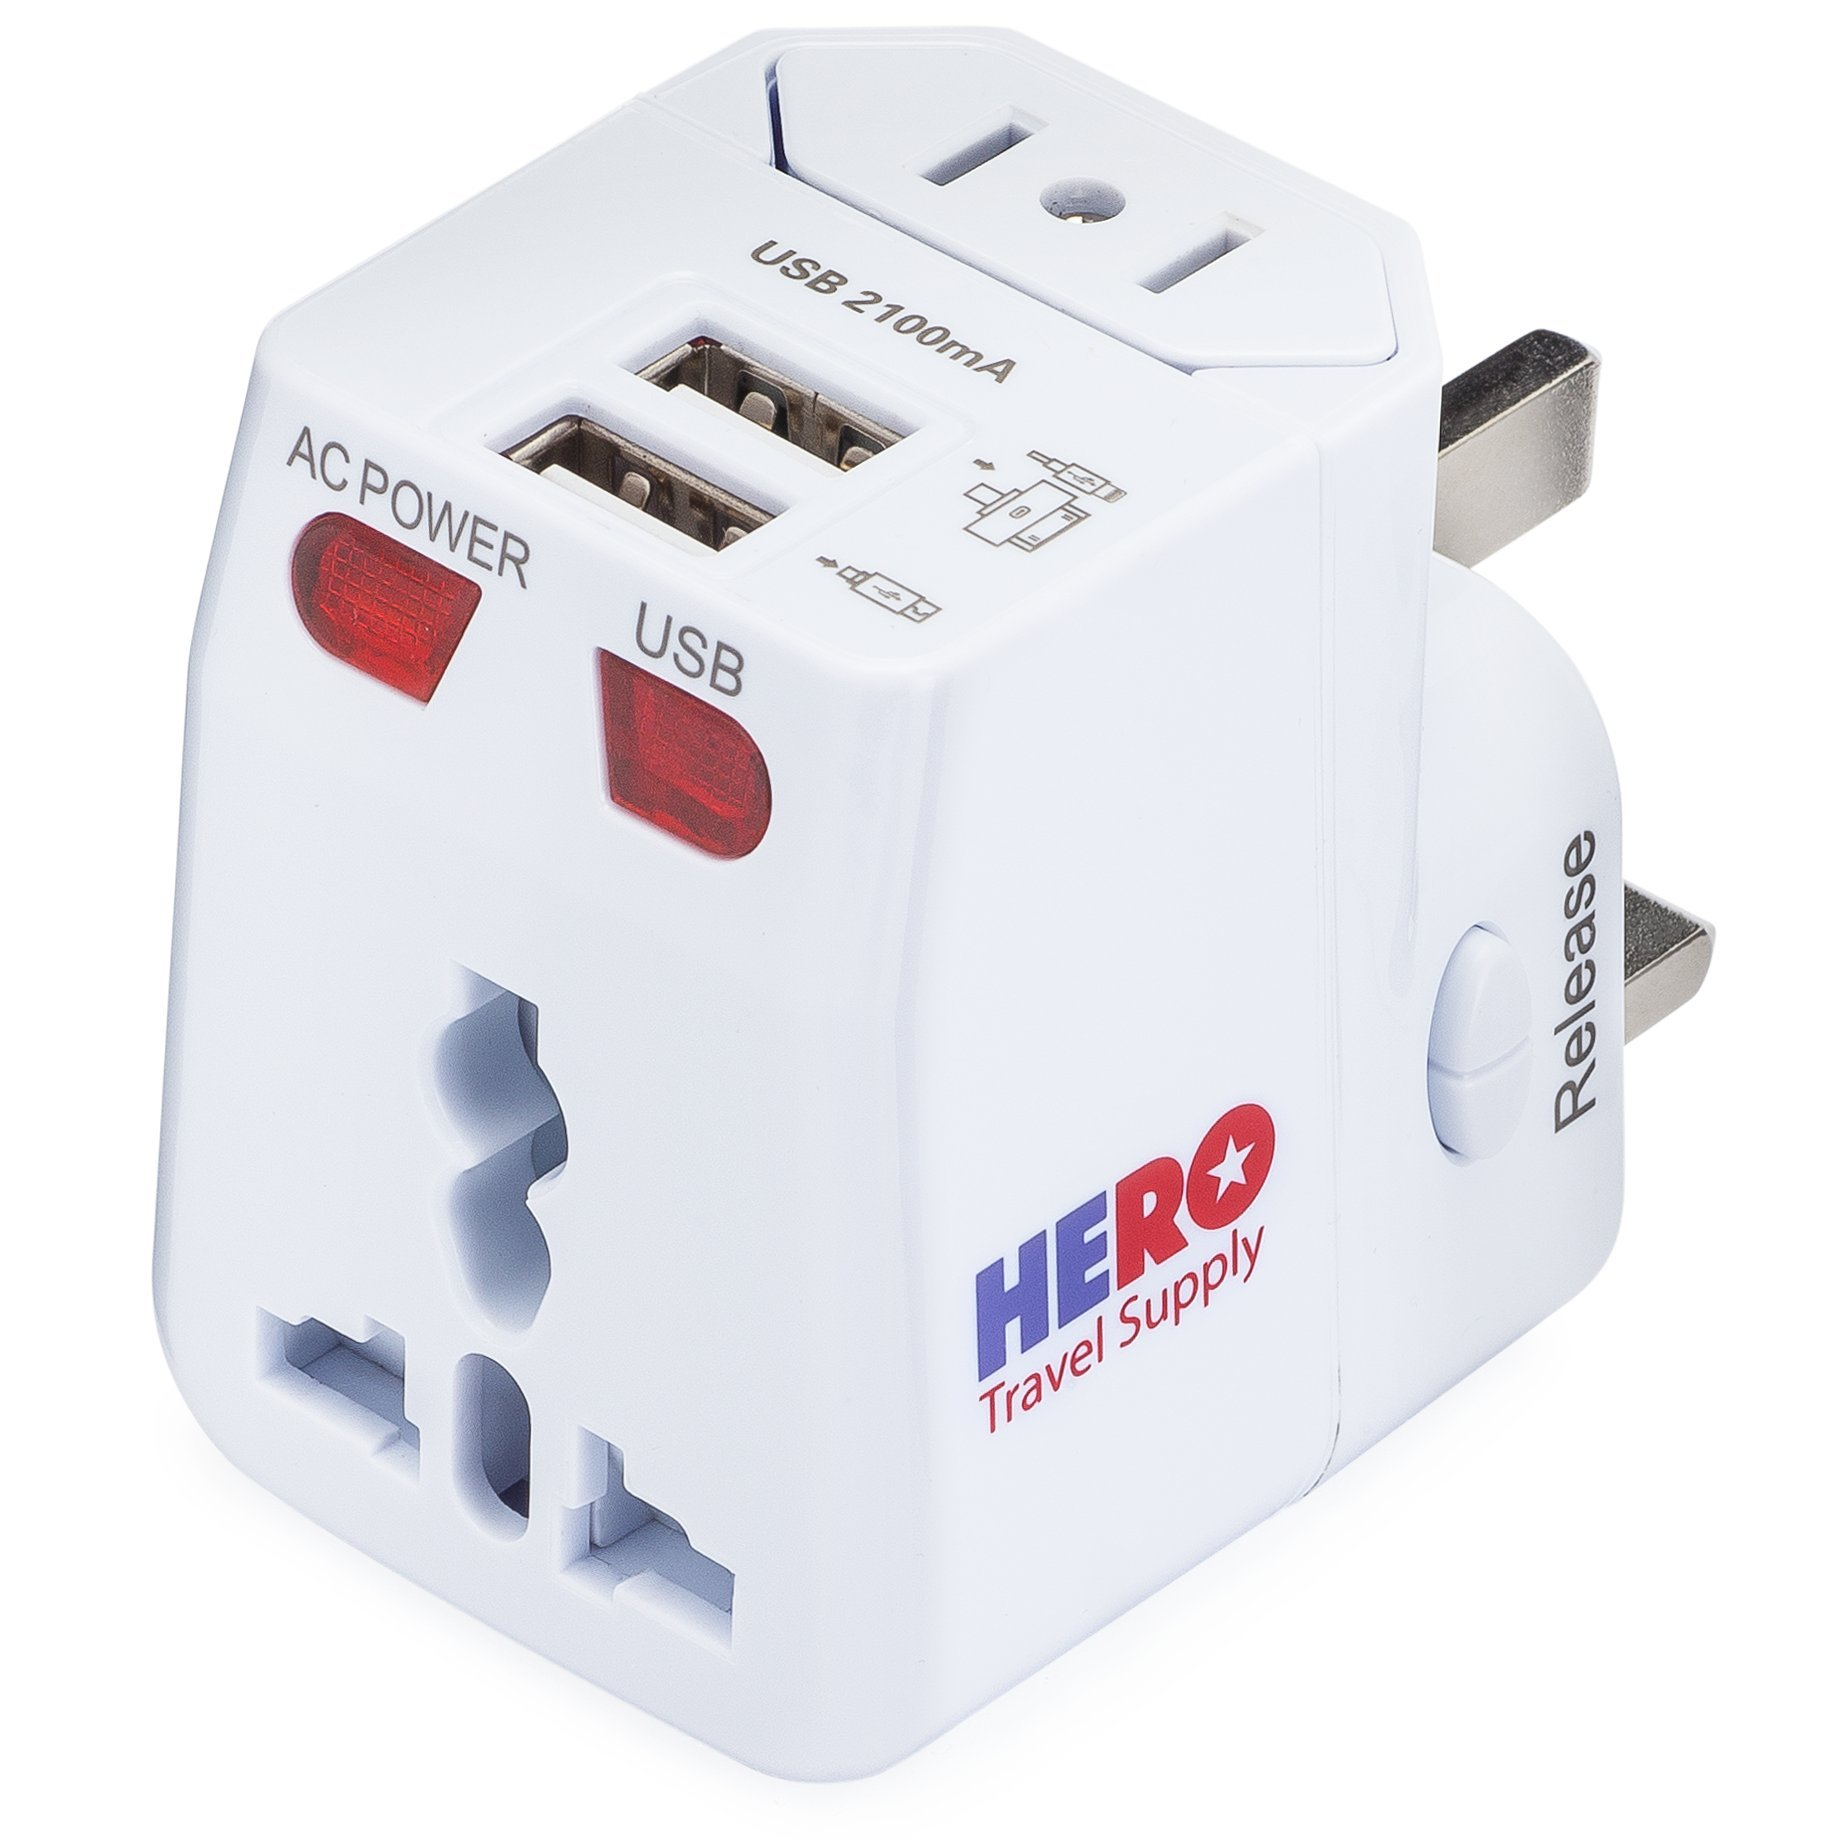 International Power Adapter Plug (2 USB Ports) - US Europe France UK Ireland Thailand China NZ Australia 100+ Countries - Individually Tested in the USA by Hero Travel Supply - White